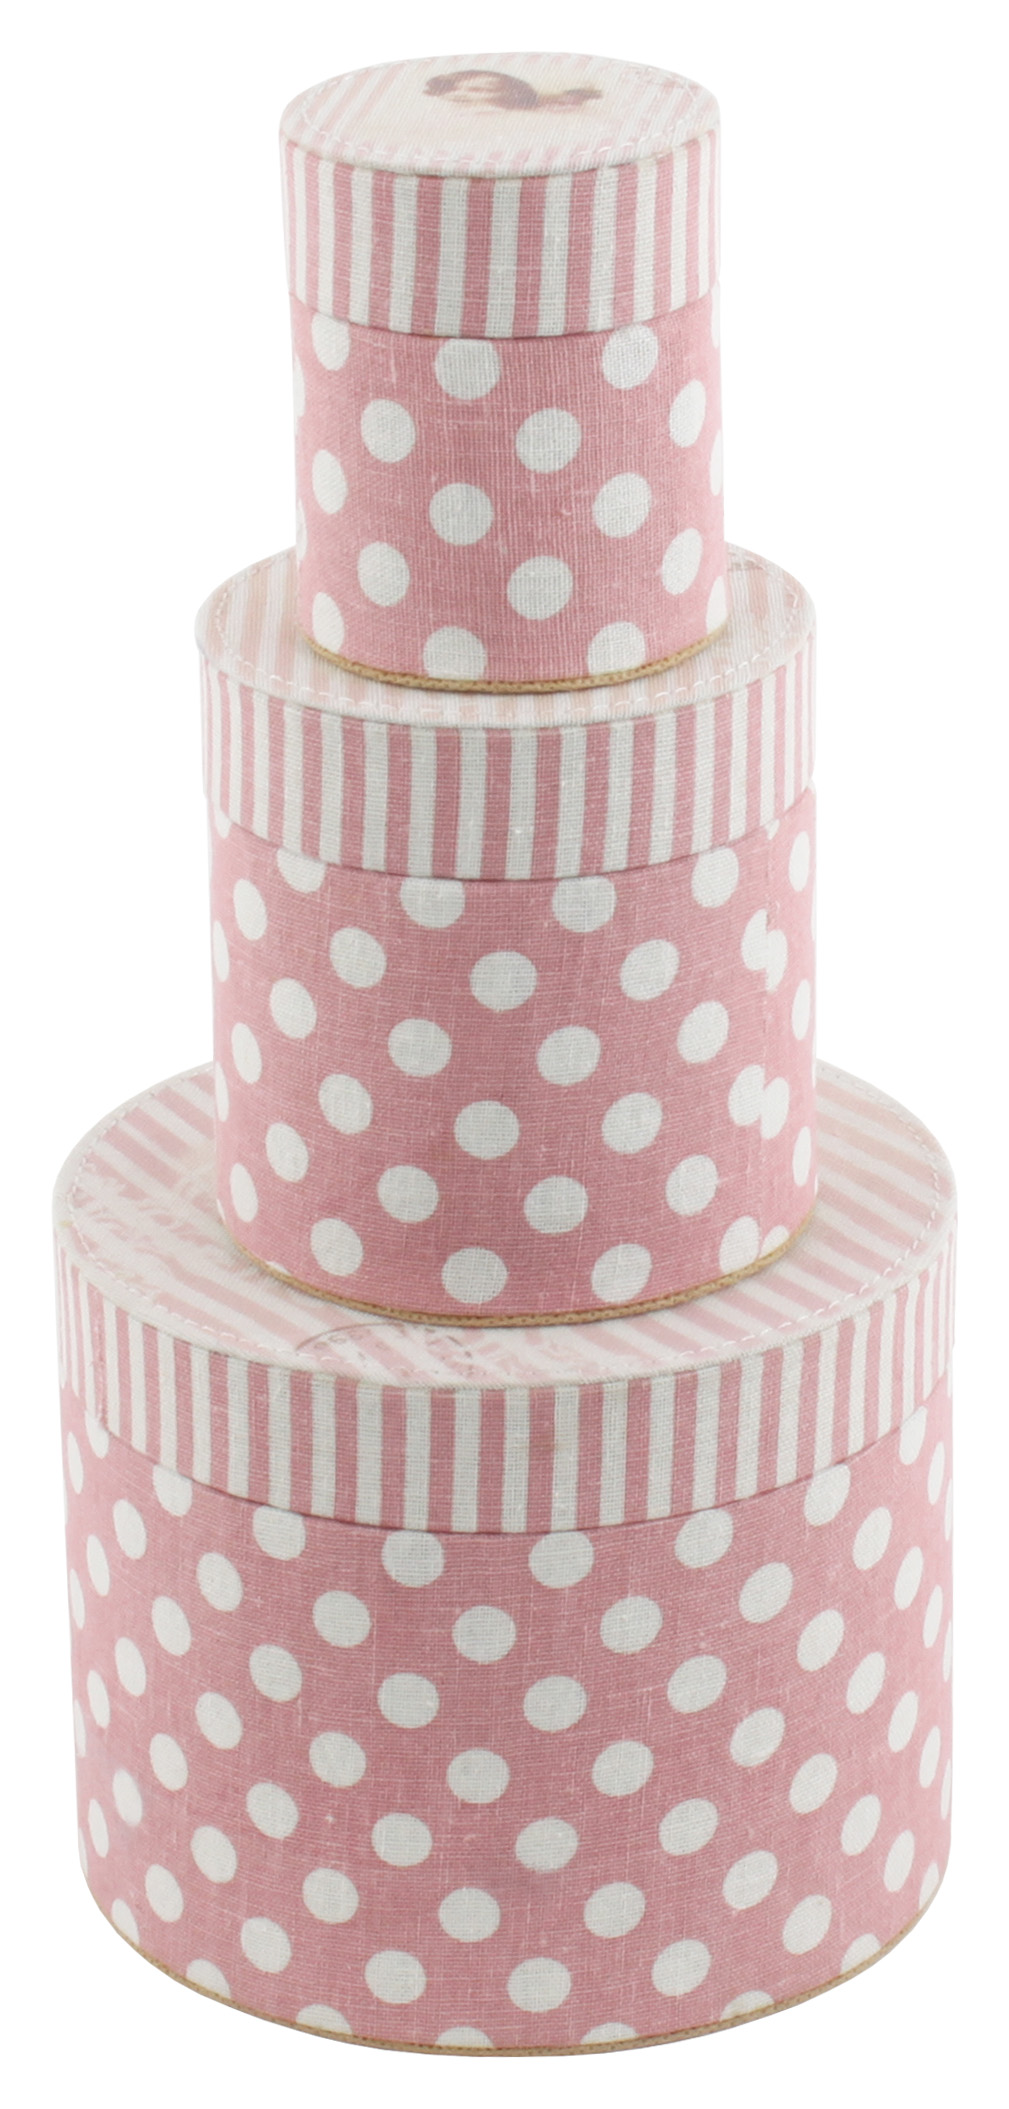 €27 S/3 FABRIC BOX W/PINK STRIPES AND DOTS 15x12.5 (10% cotton/10% linen/80% polyester)